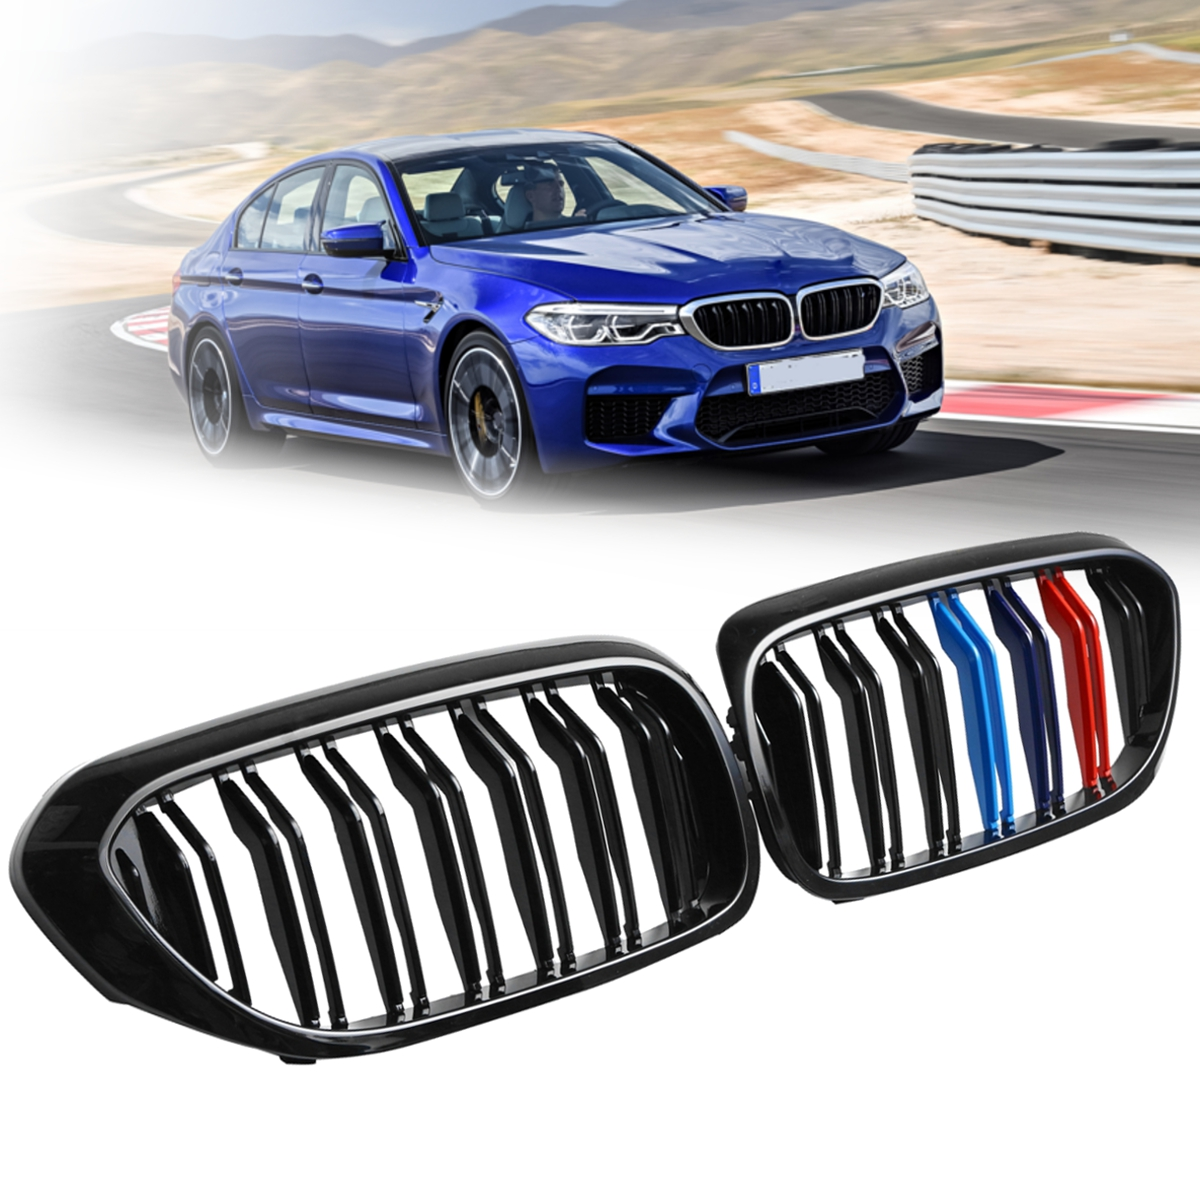 все цены на Pair Gloss Black M Color/Gloss Black Front Dual Slats Grilles For BMW 5 Series G30 G38 2017 Car styling Front Racing Grille онлайн